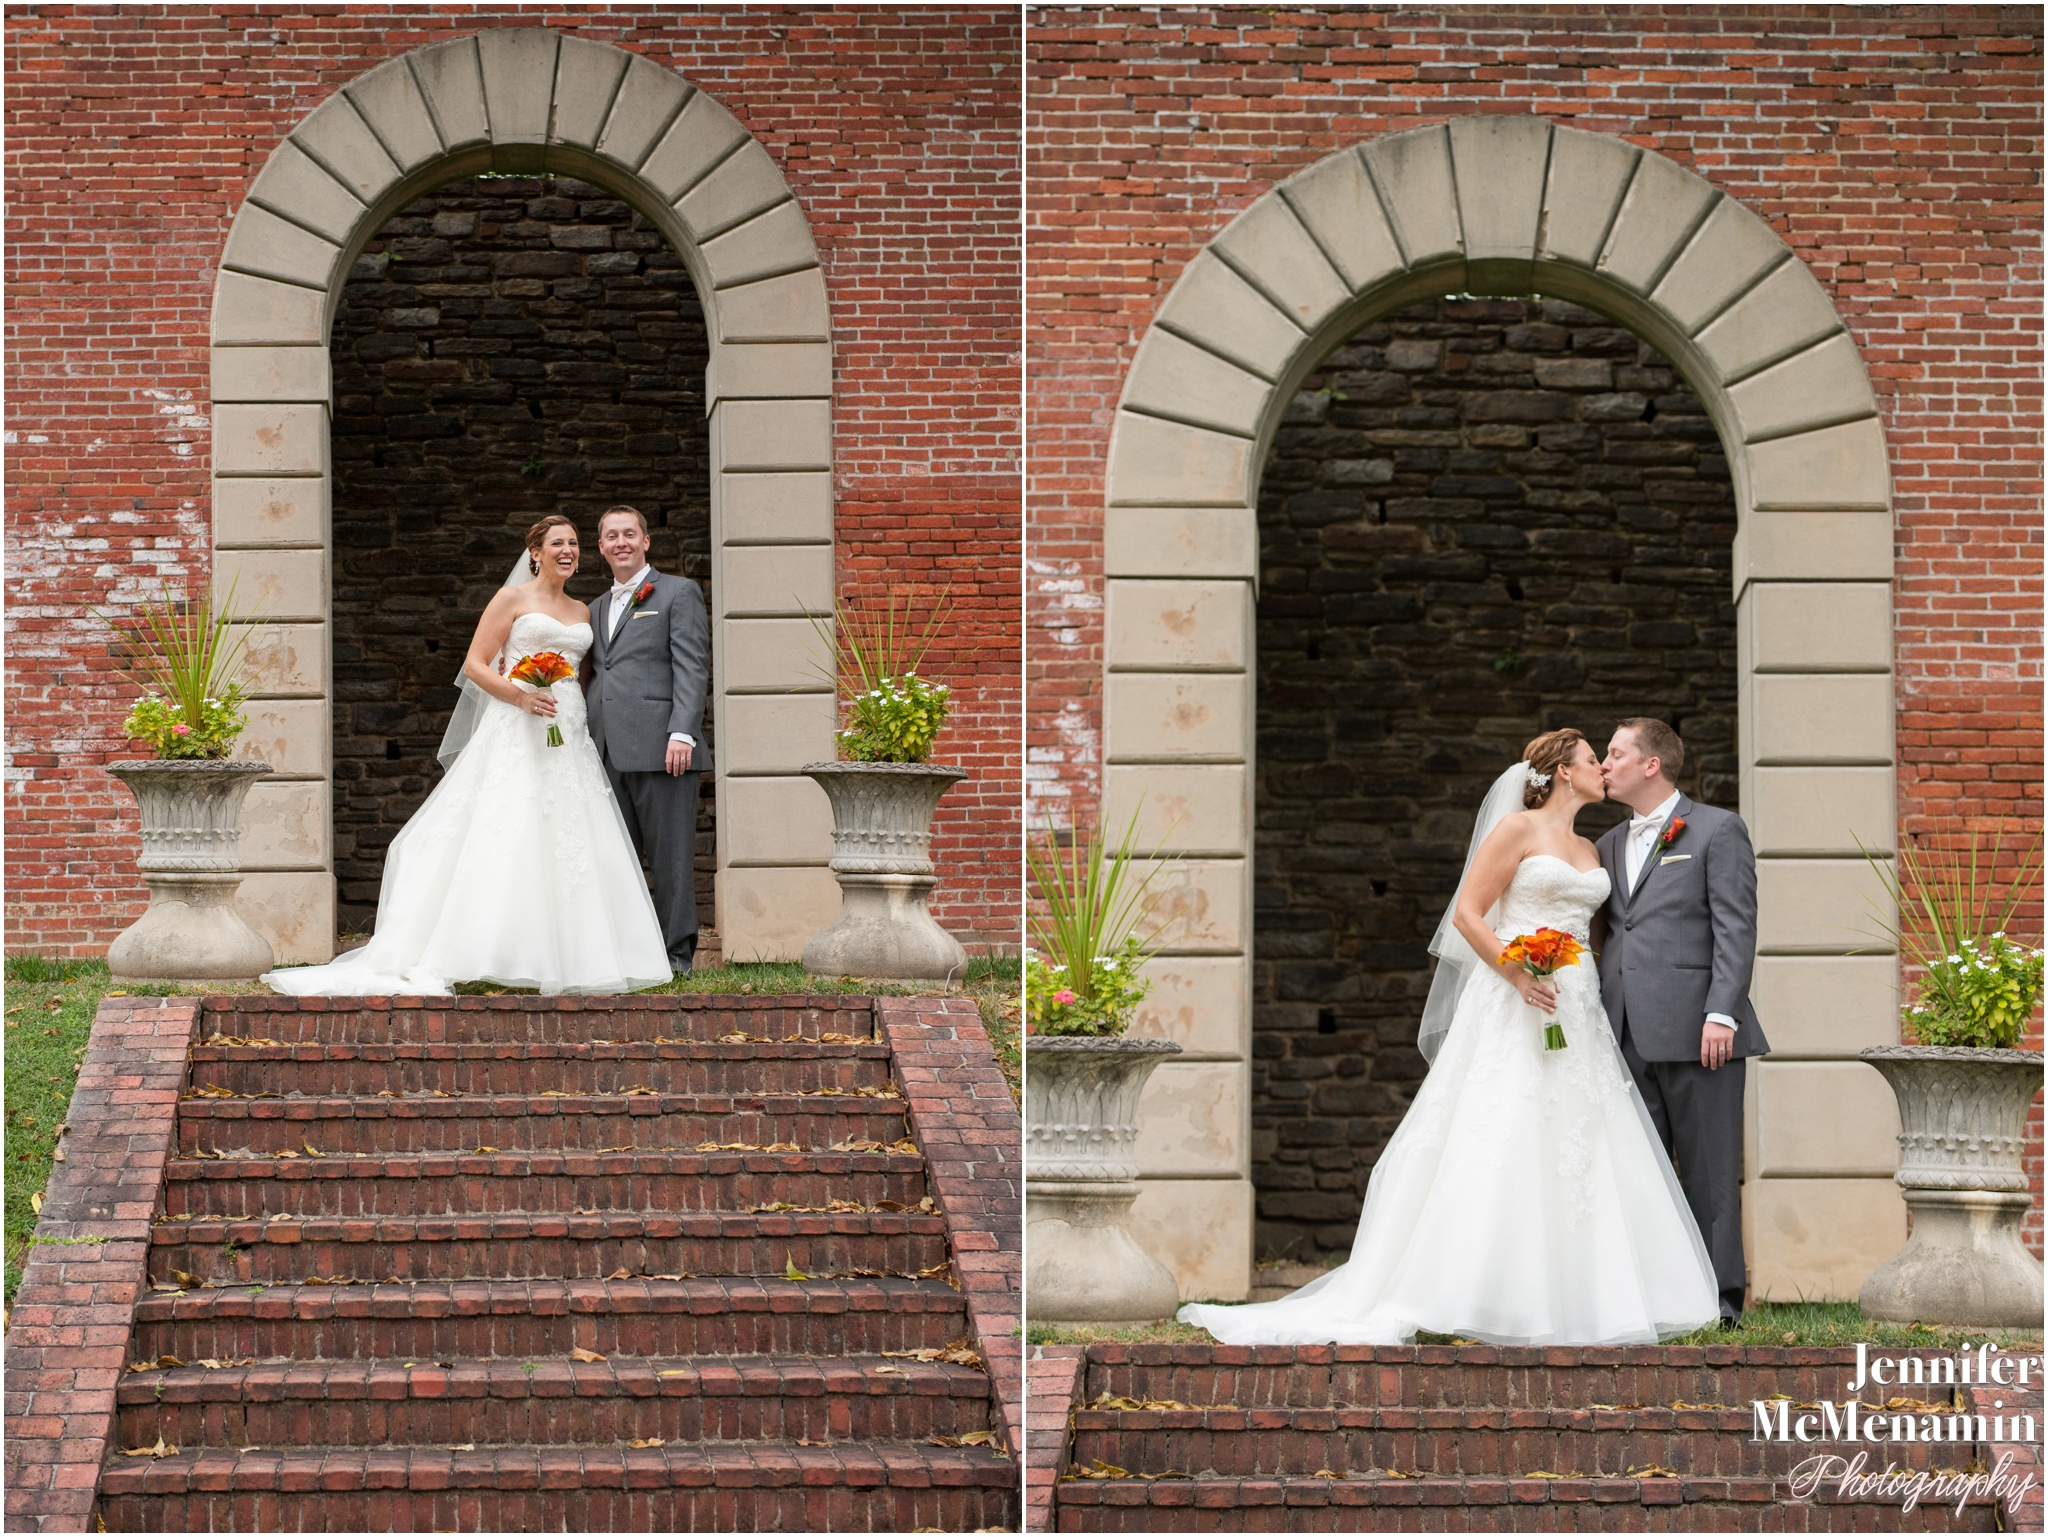 063-HenningMiller_02210-0448_JenniferMcMenaminPhotography_Evergreen-Museum-And-Carriage-House_Evergreen-wedding_Baltimore-wedding-photographer_Baltimore-wedding-photography